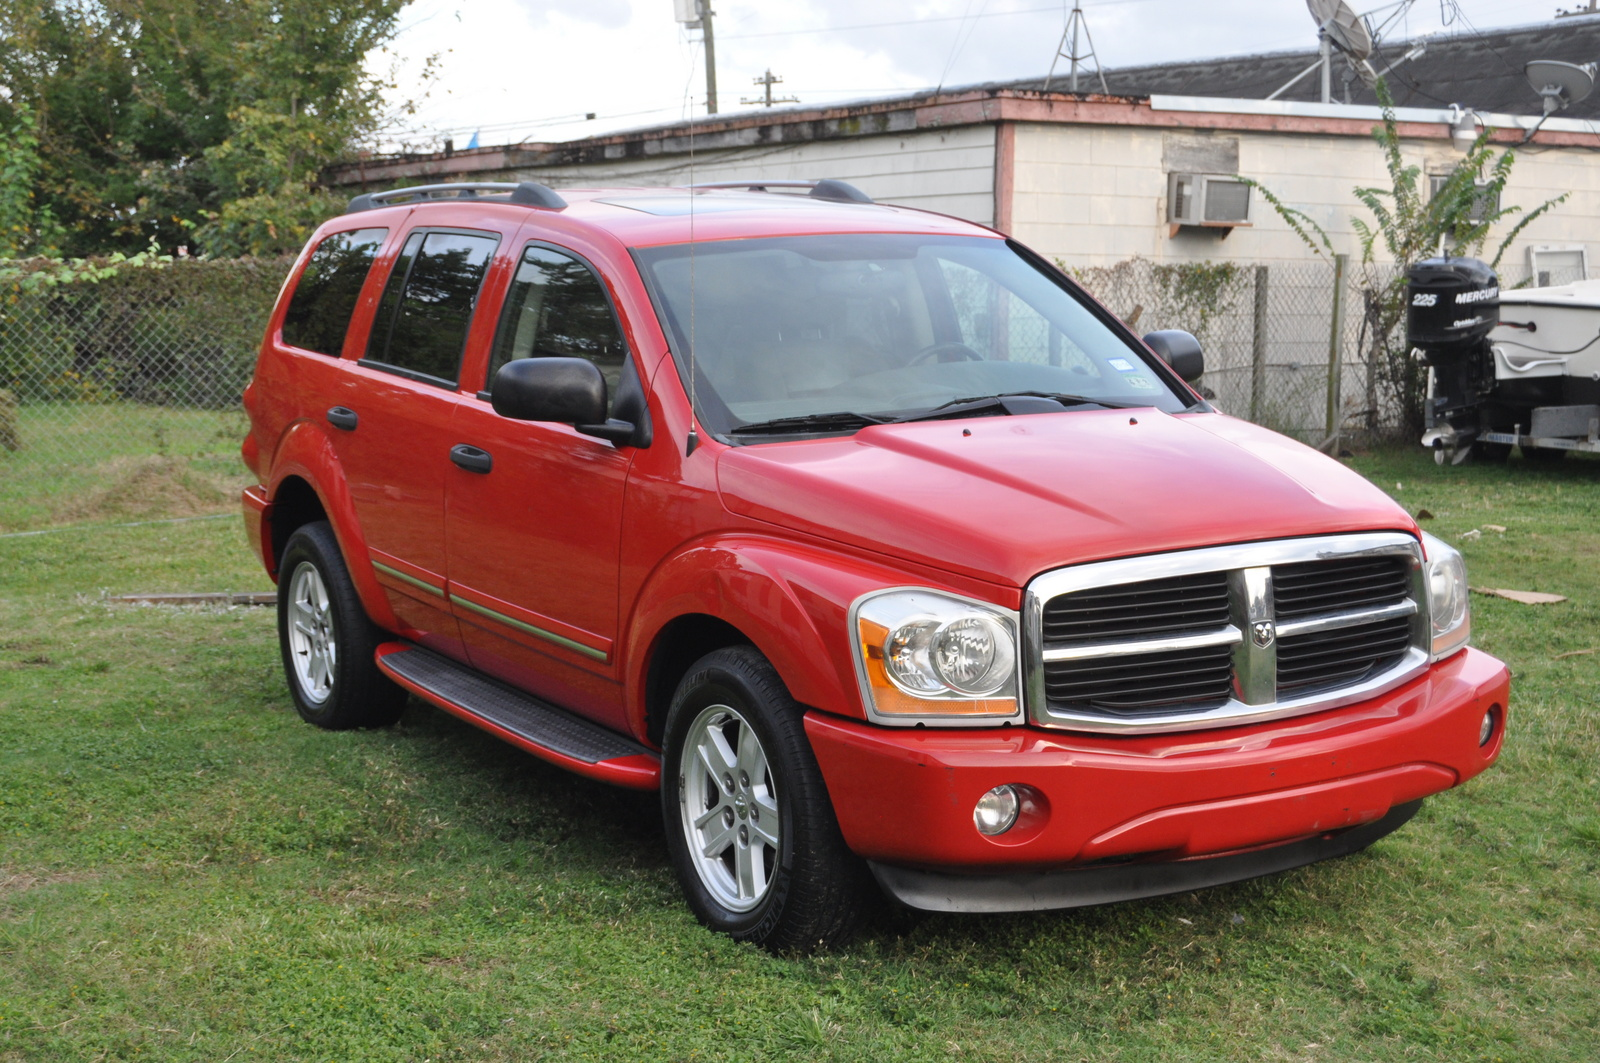 2006 dodge durango pictures cargurus. Cars Review. Best American Auto & Cars Review